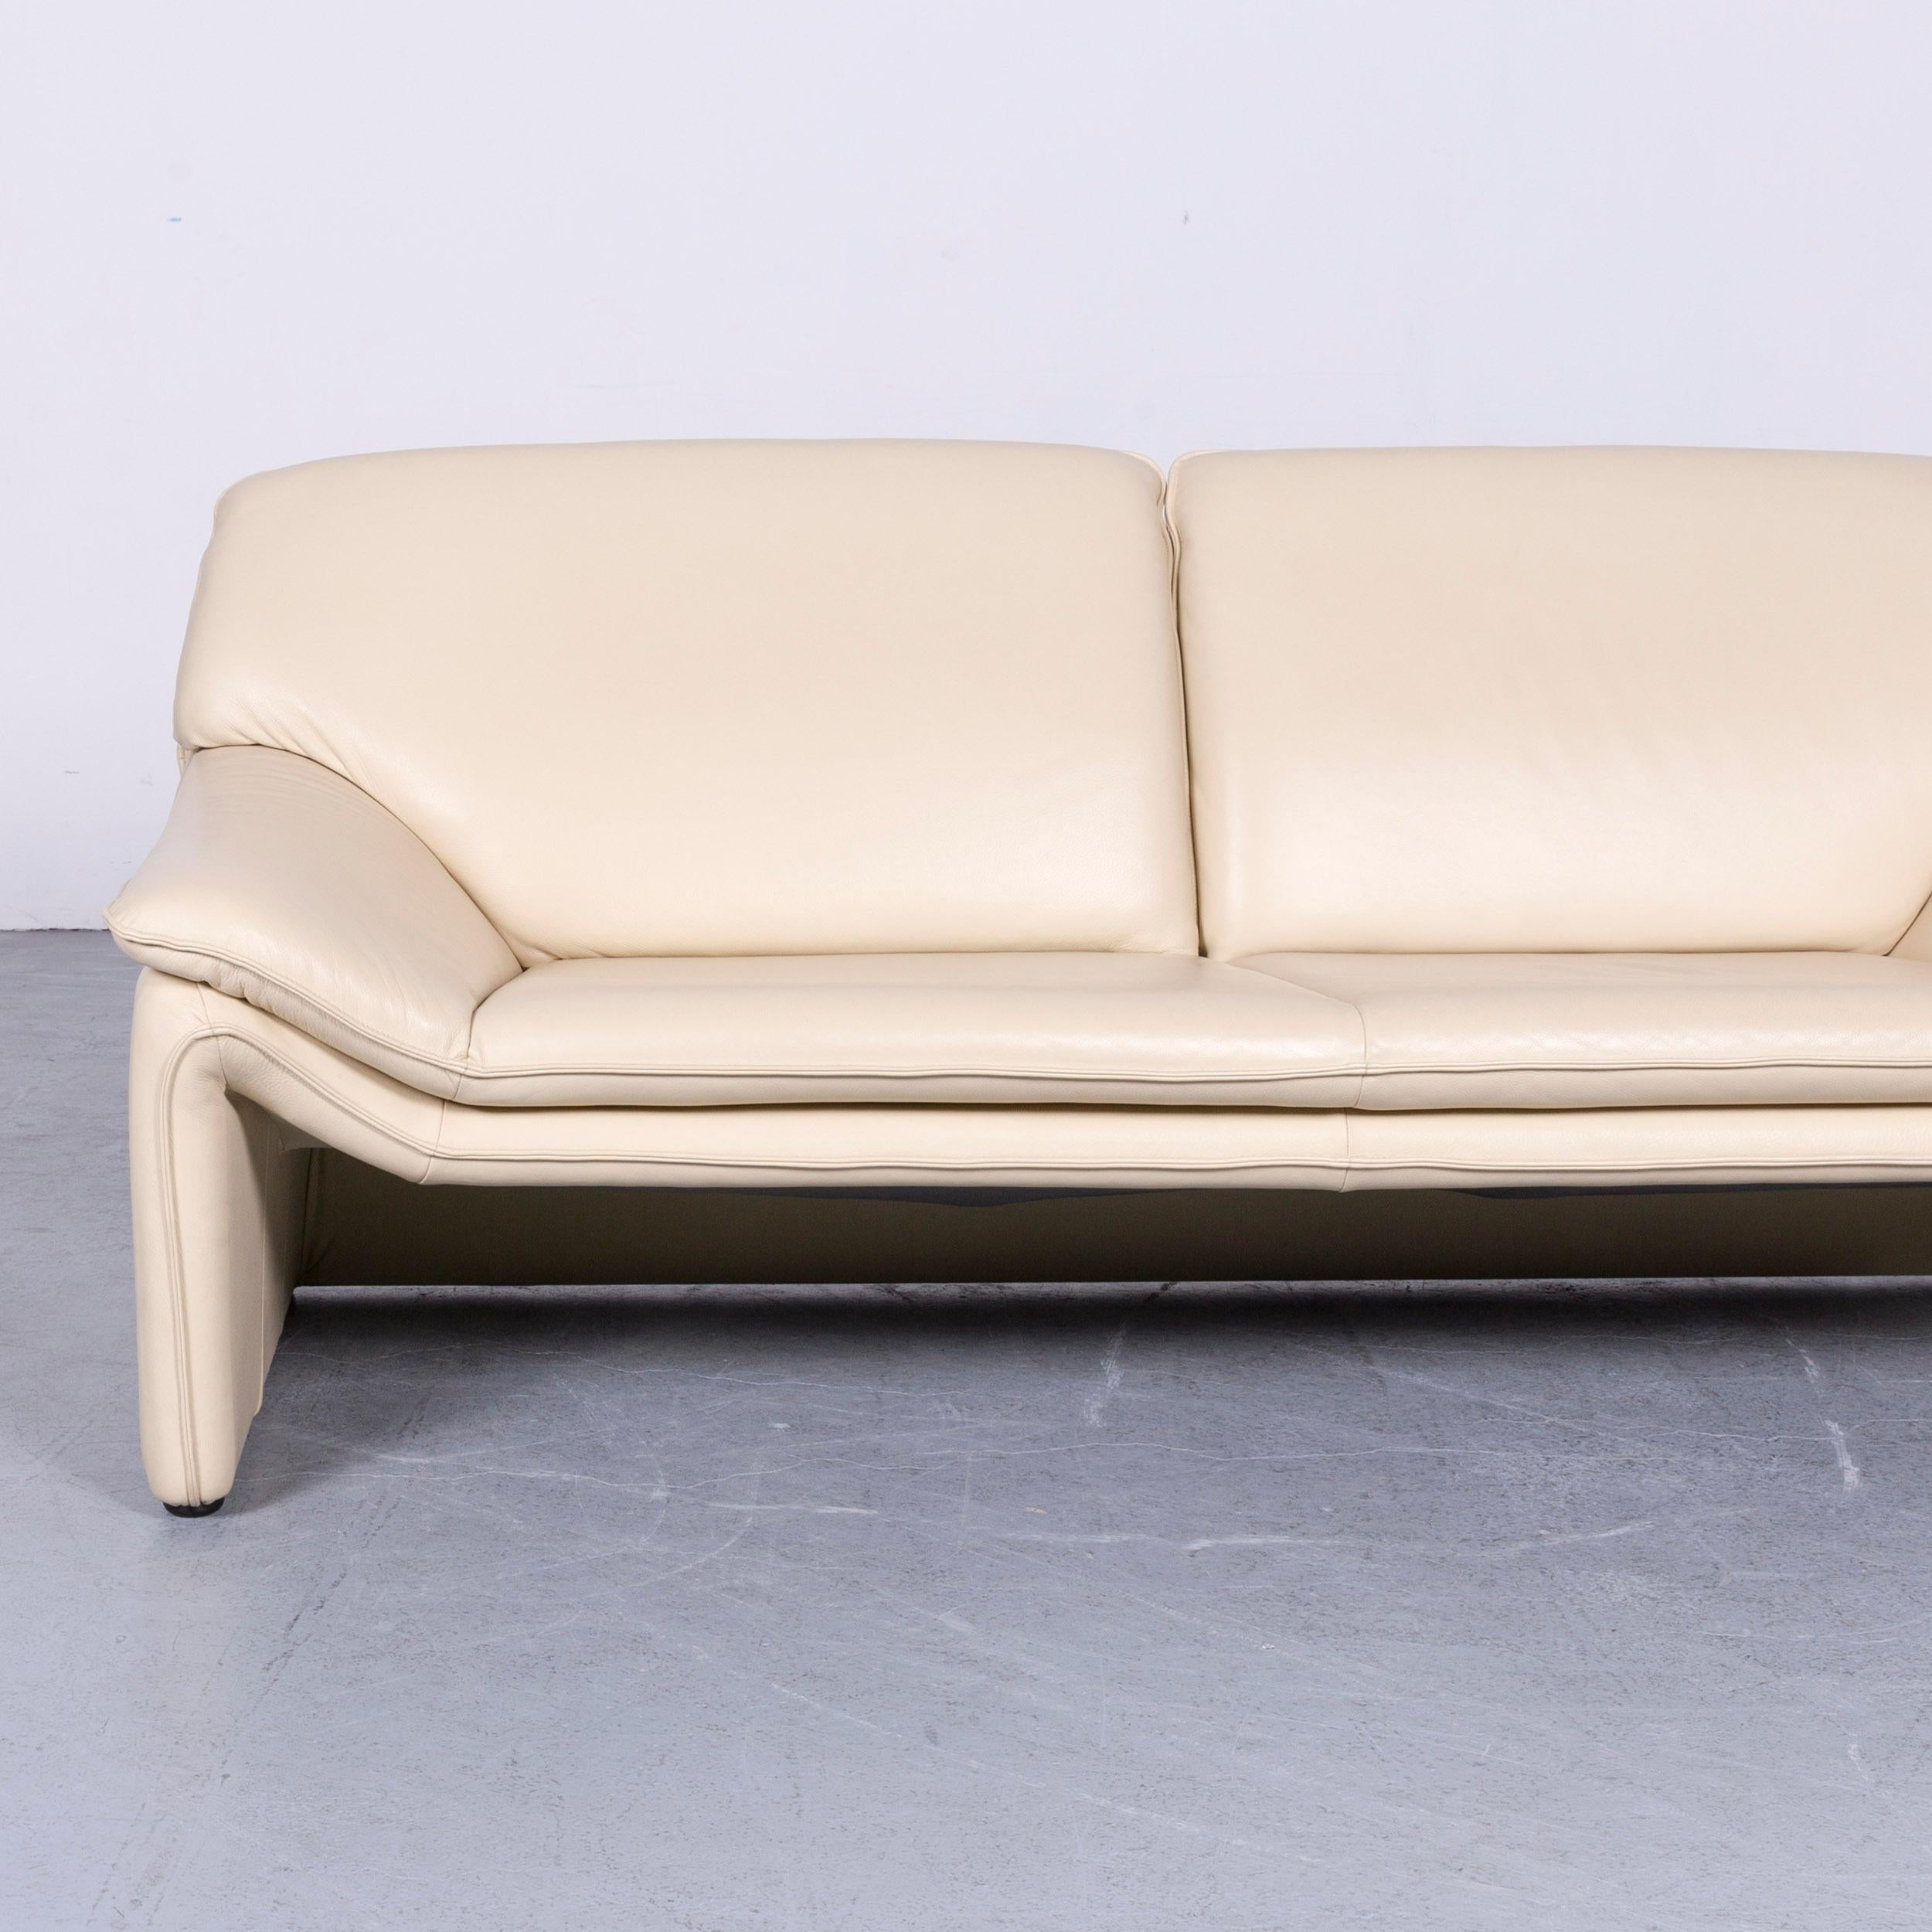 German Laauser Atlanta Designer Leather Sofa Crème Three Seat Couch For Sale